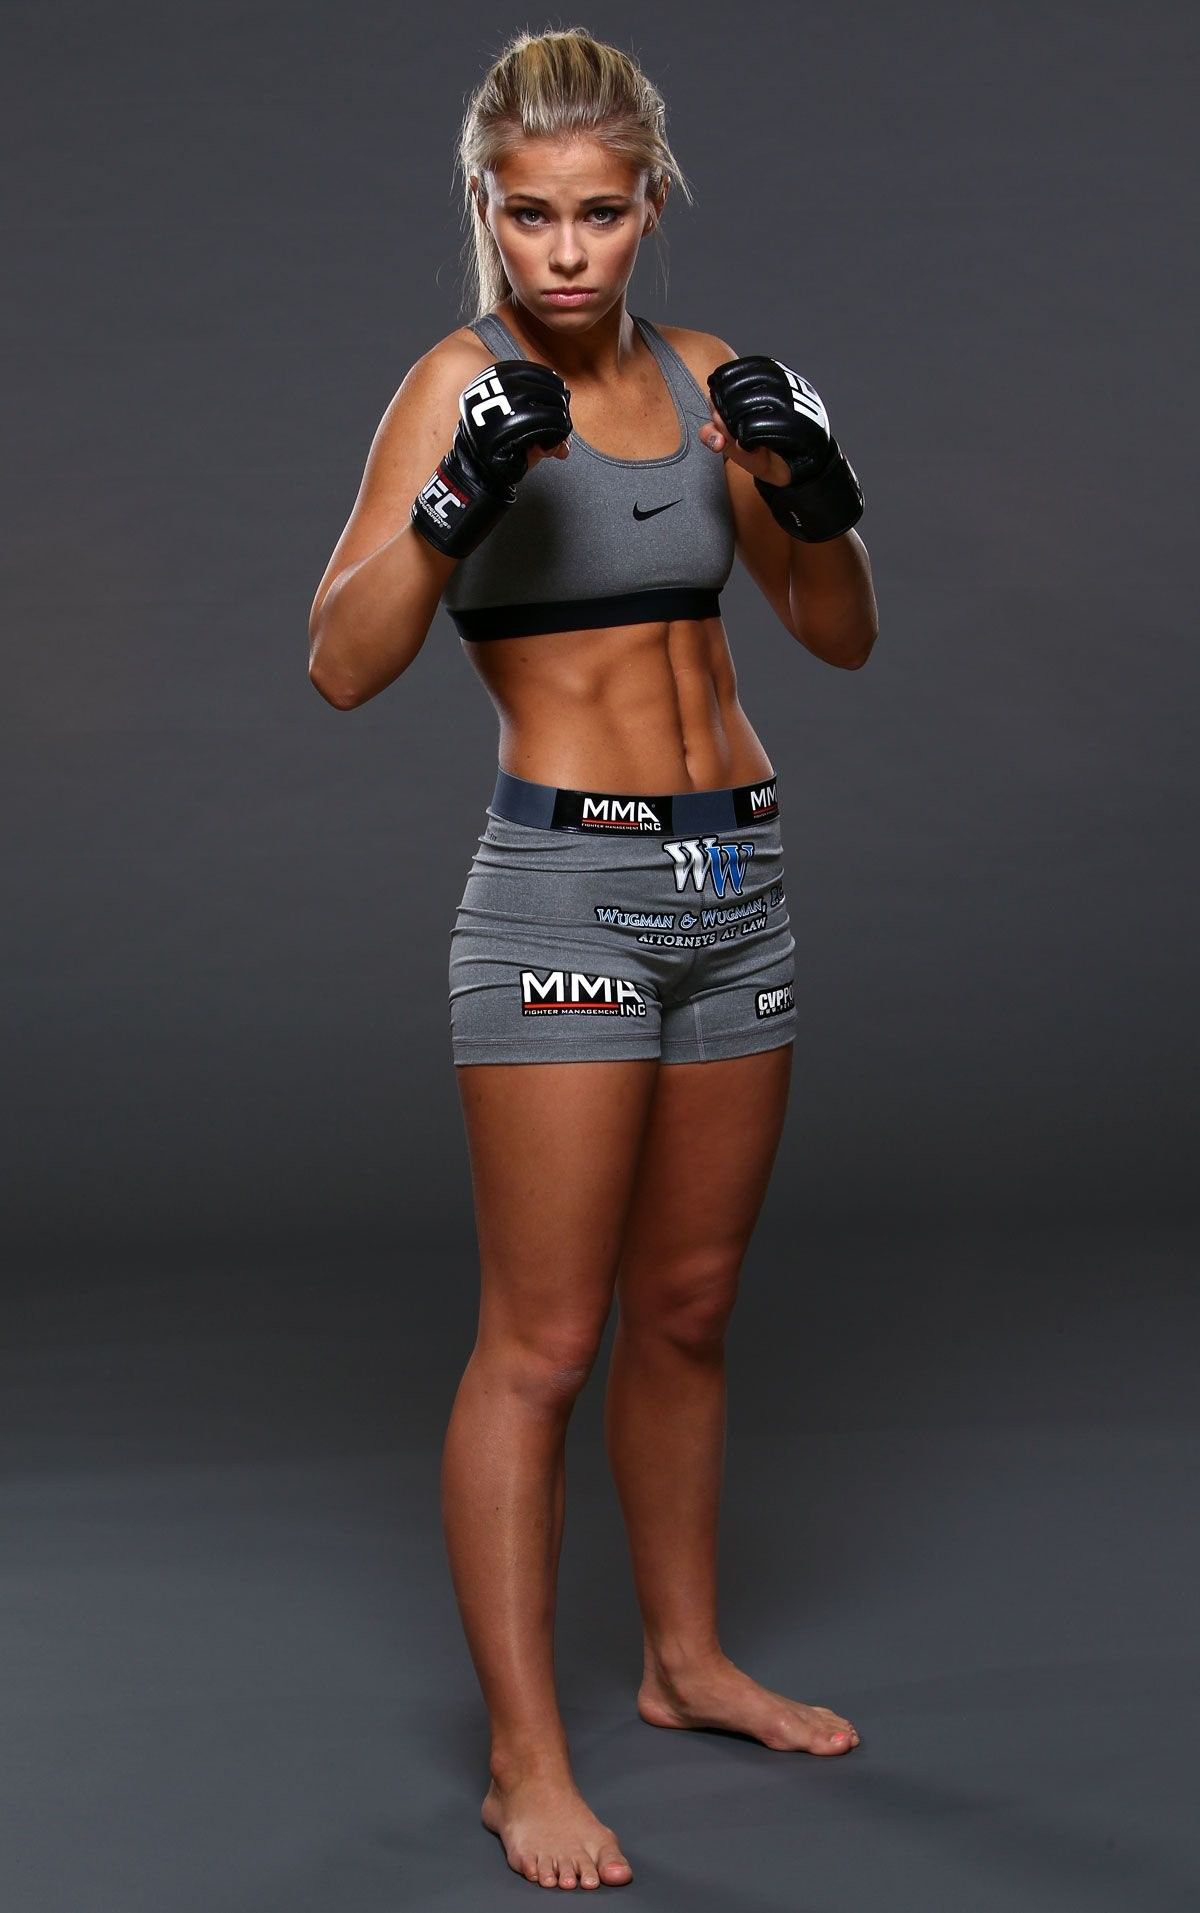 Pin By Andre Pattijn On Boxing In 2020 Mma Women Mma Girls Female Mma Fighters